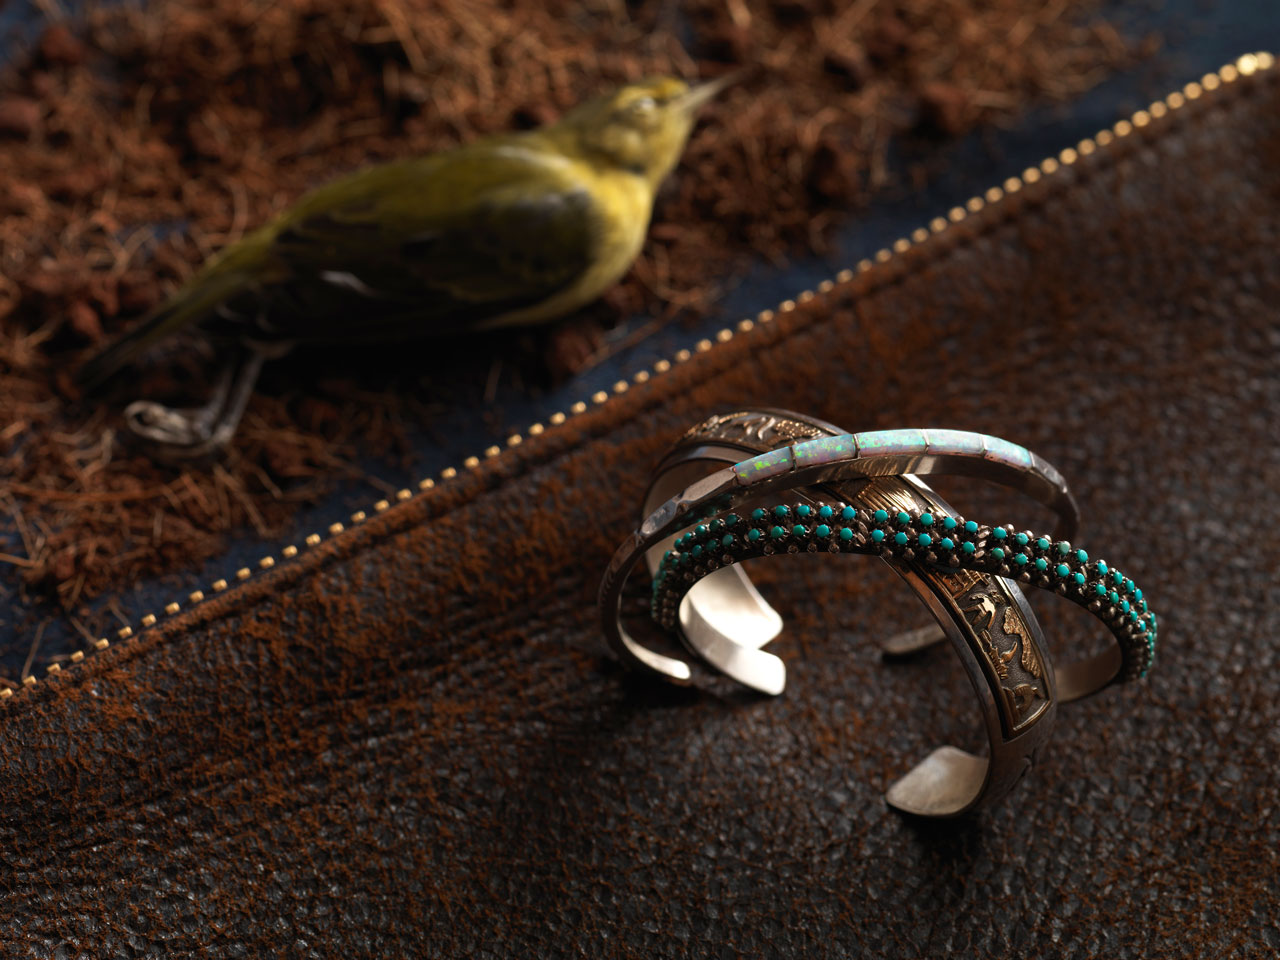 Marx_Still Life_ photography_Jewelry_bracelets